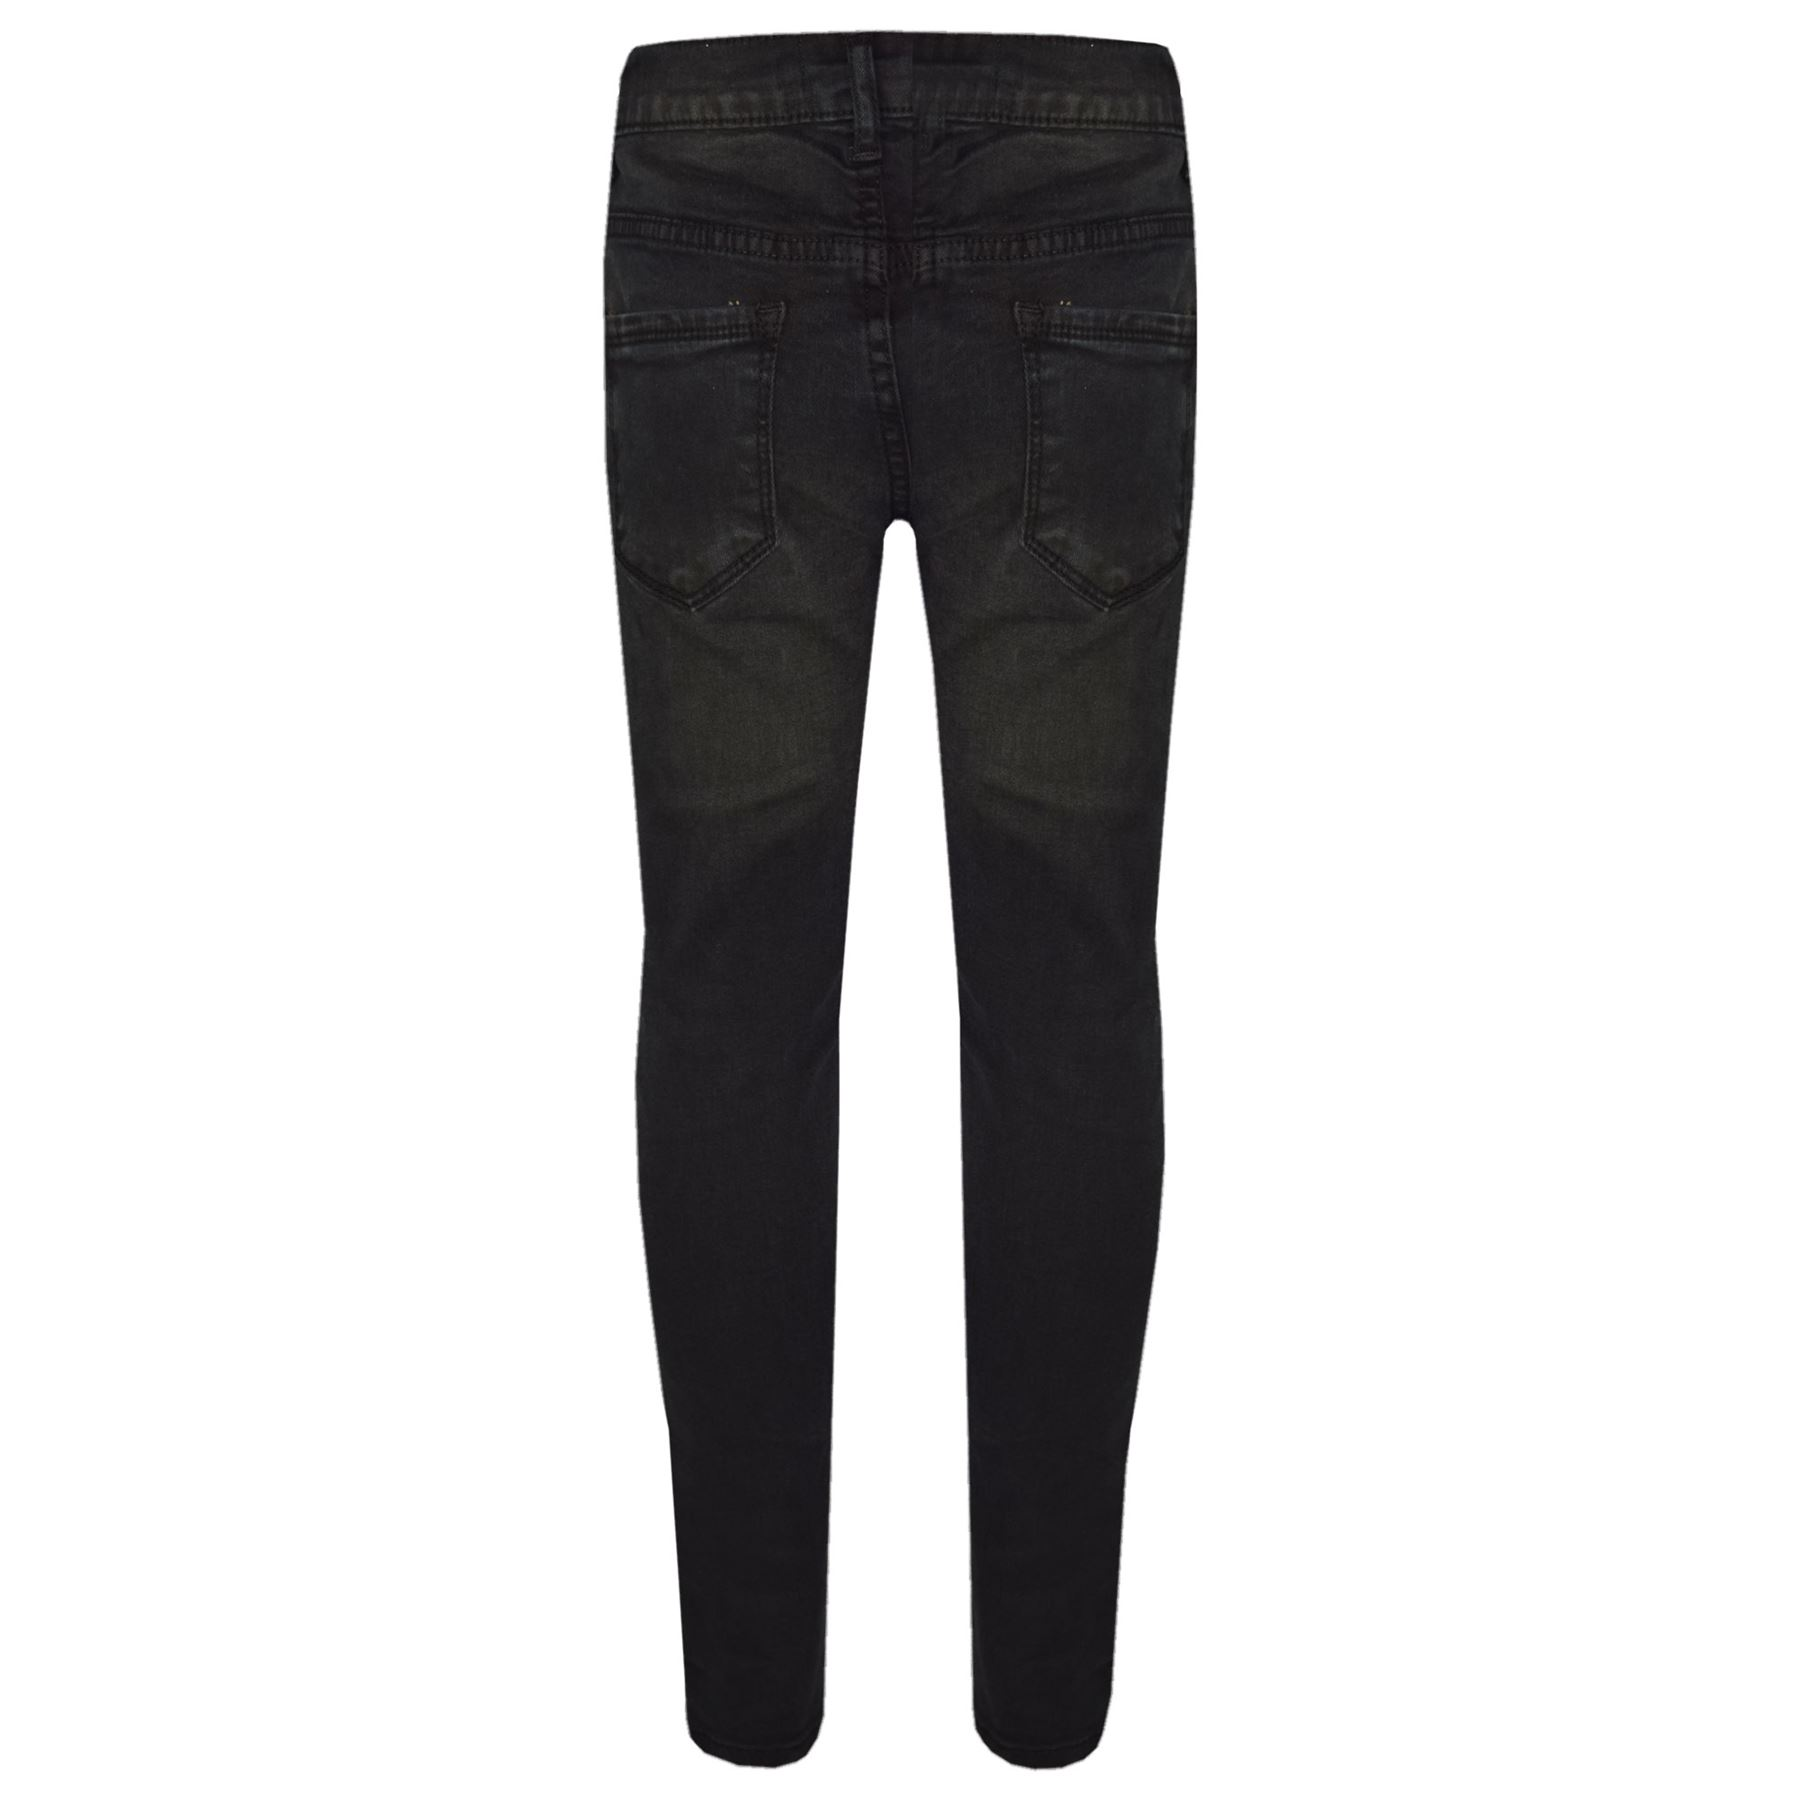 793095696a0 Girls Stretchy Jeans Kids Black Denim Ripped Pants Frayed Trousers ...